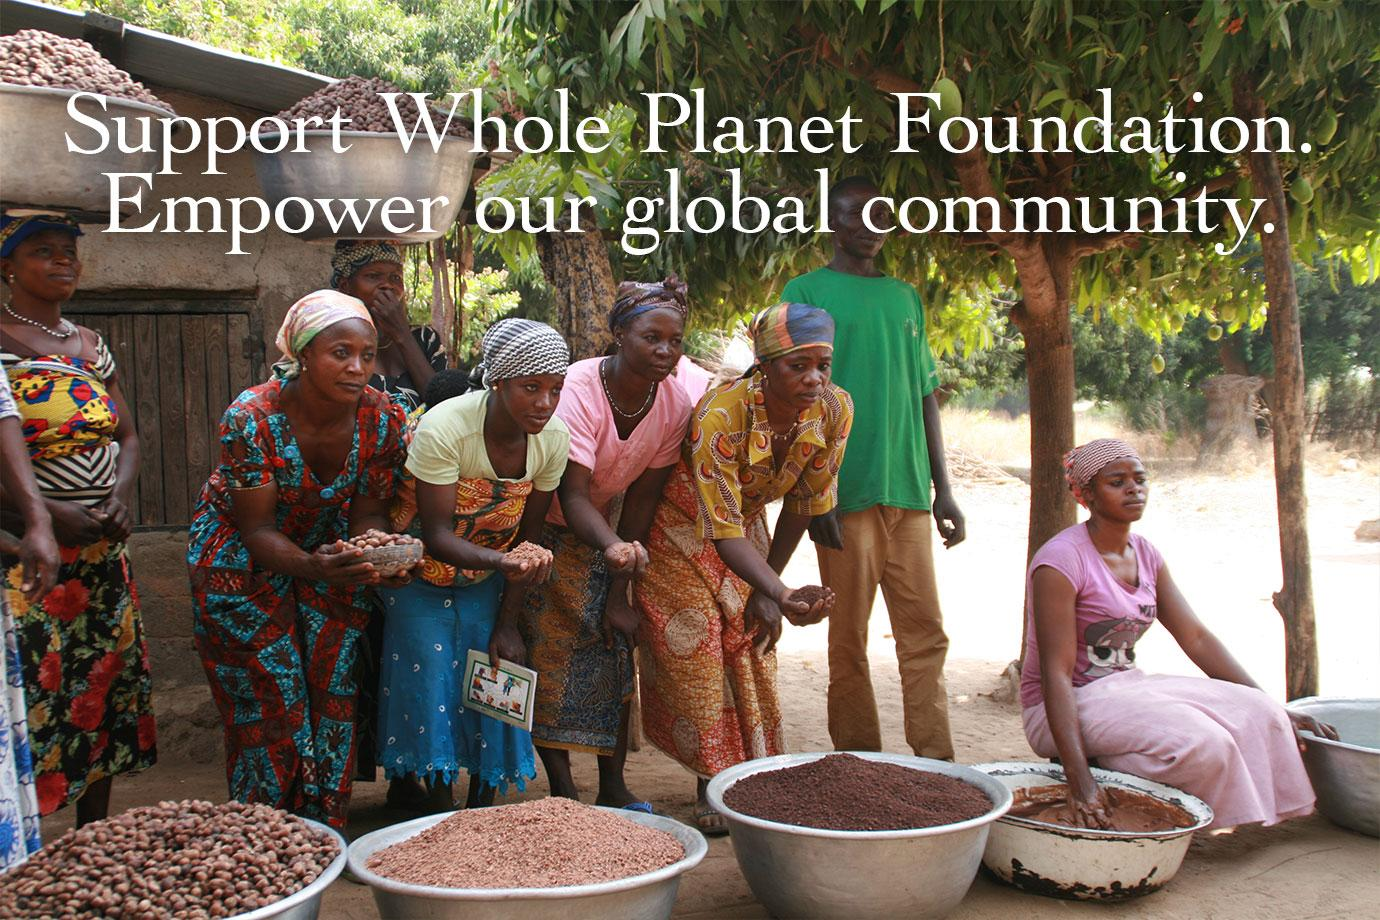 Support Whole Planet Foundation. Empower our global community.